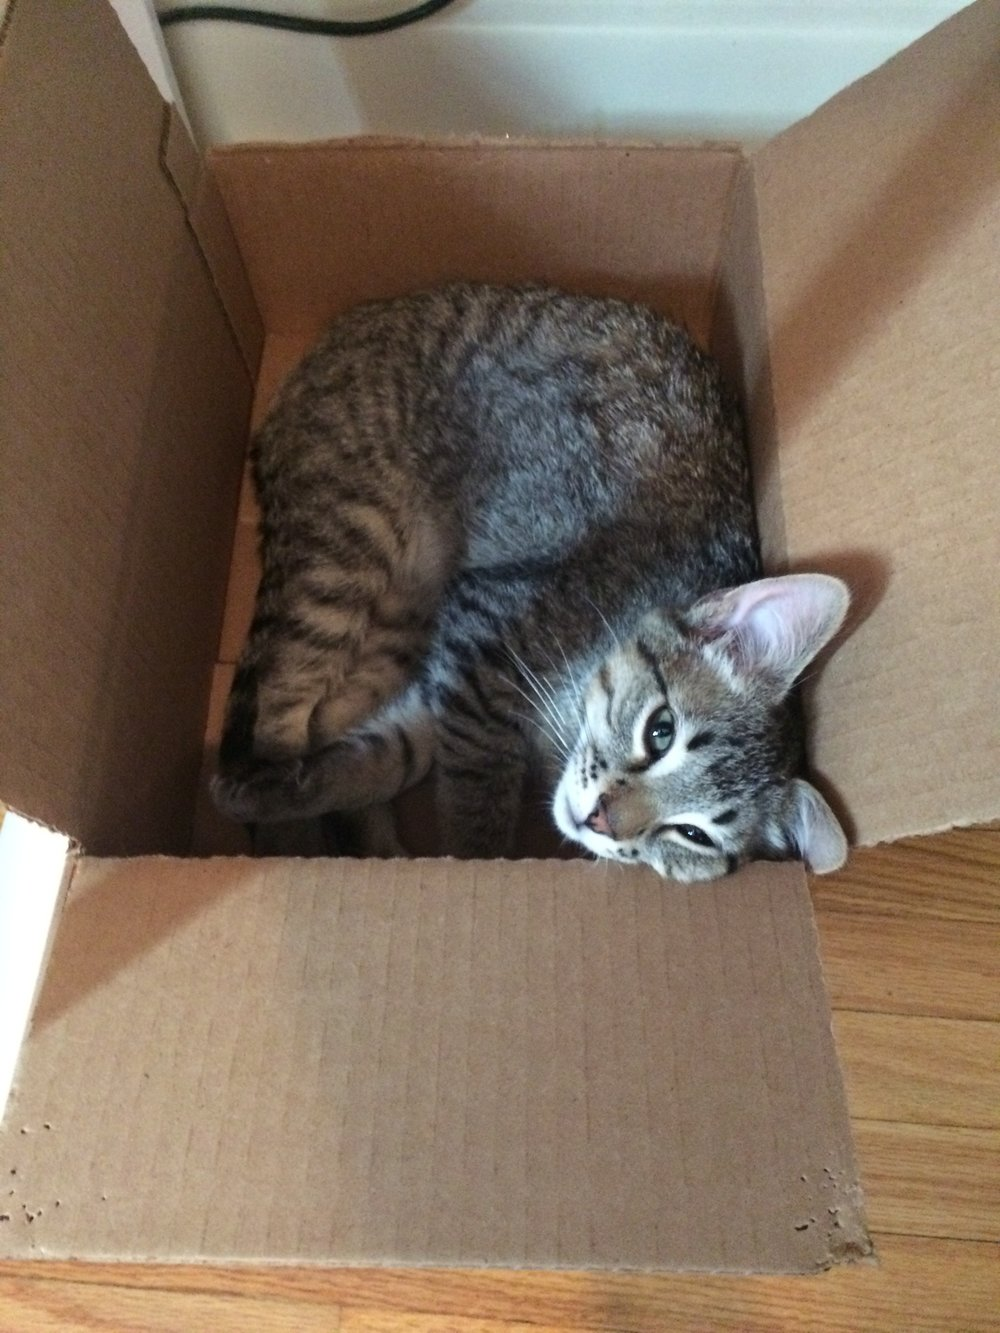 Gus in a box!